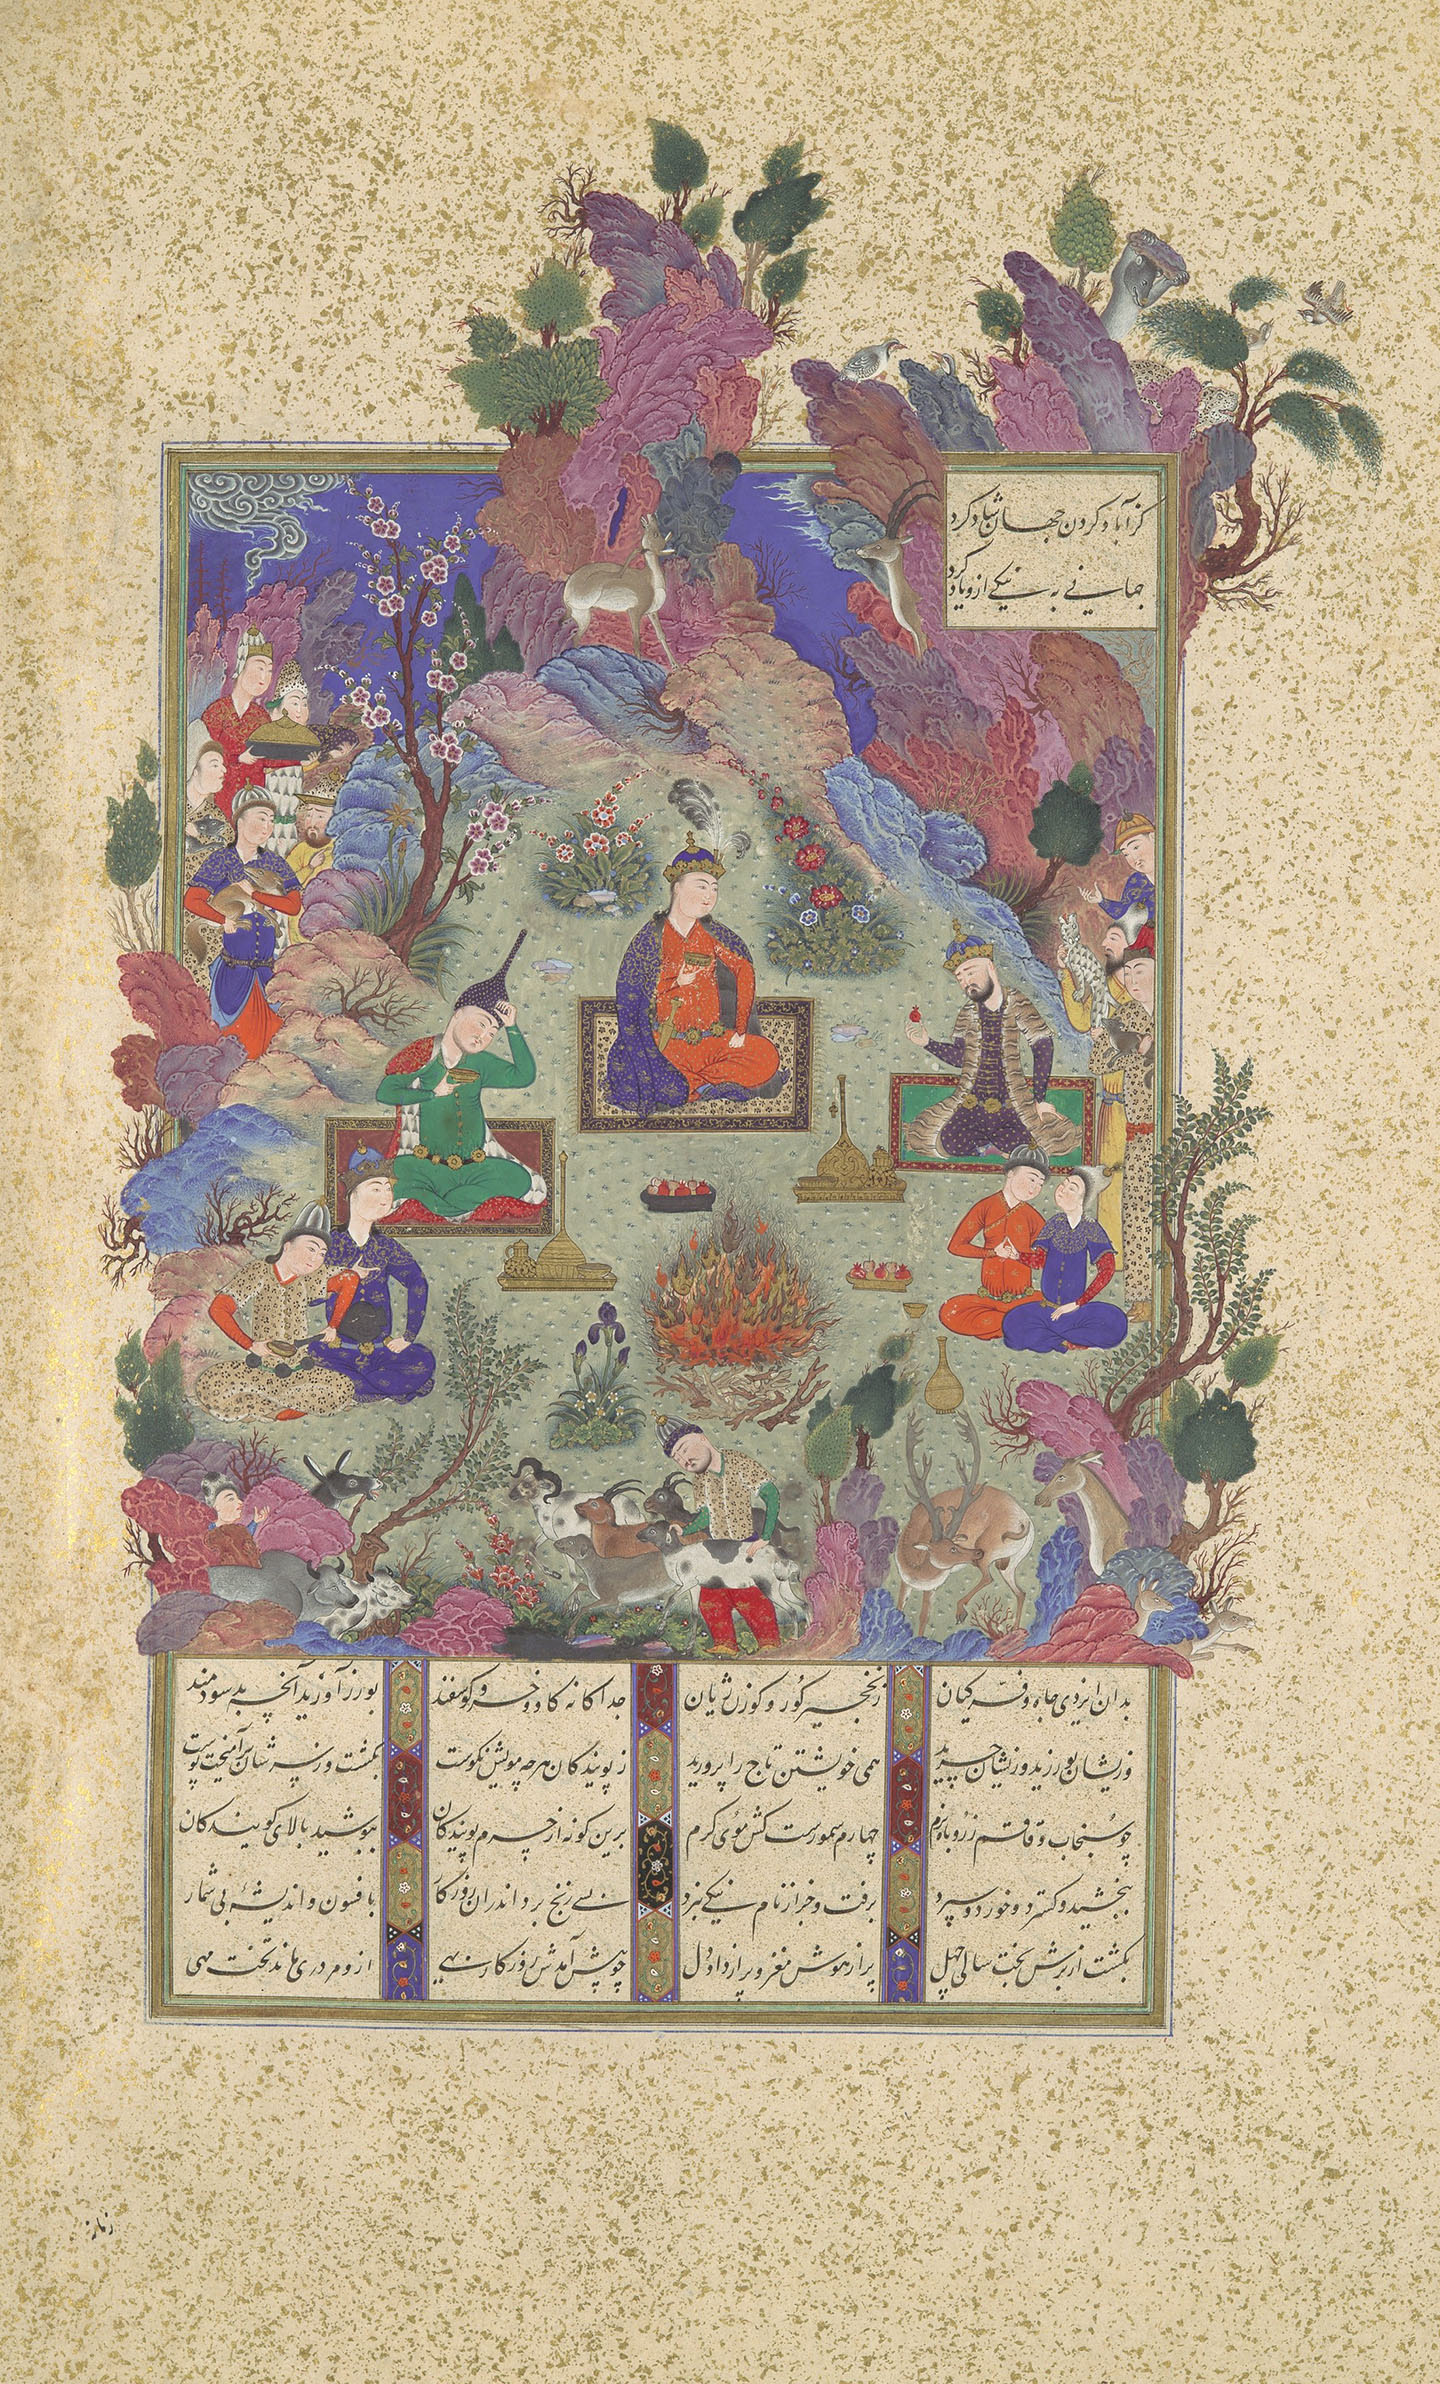 A colorful Islamic manuscript page decorated with caligraphic writing and figures in a landscape around a campfire